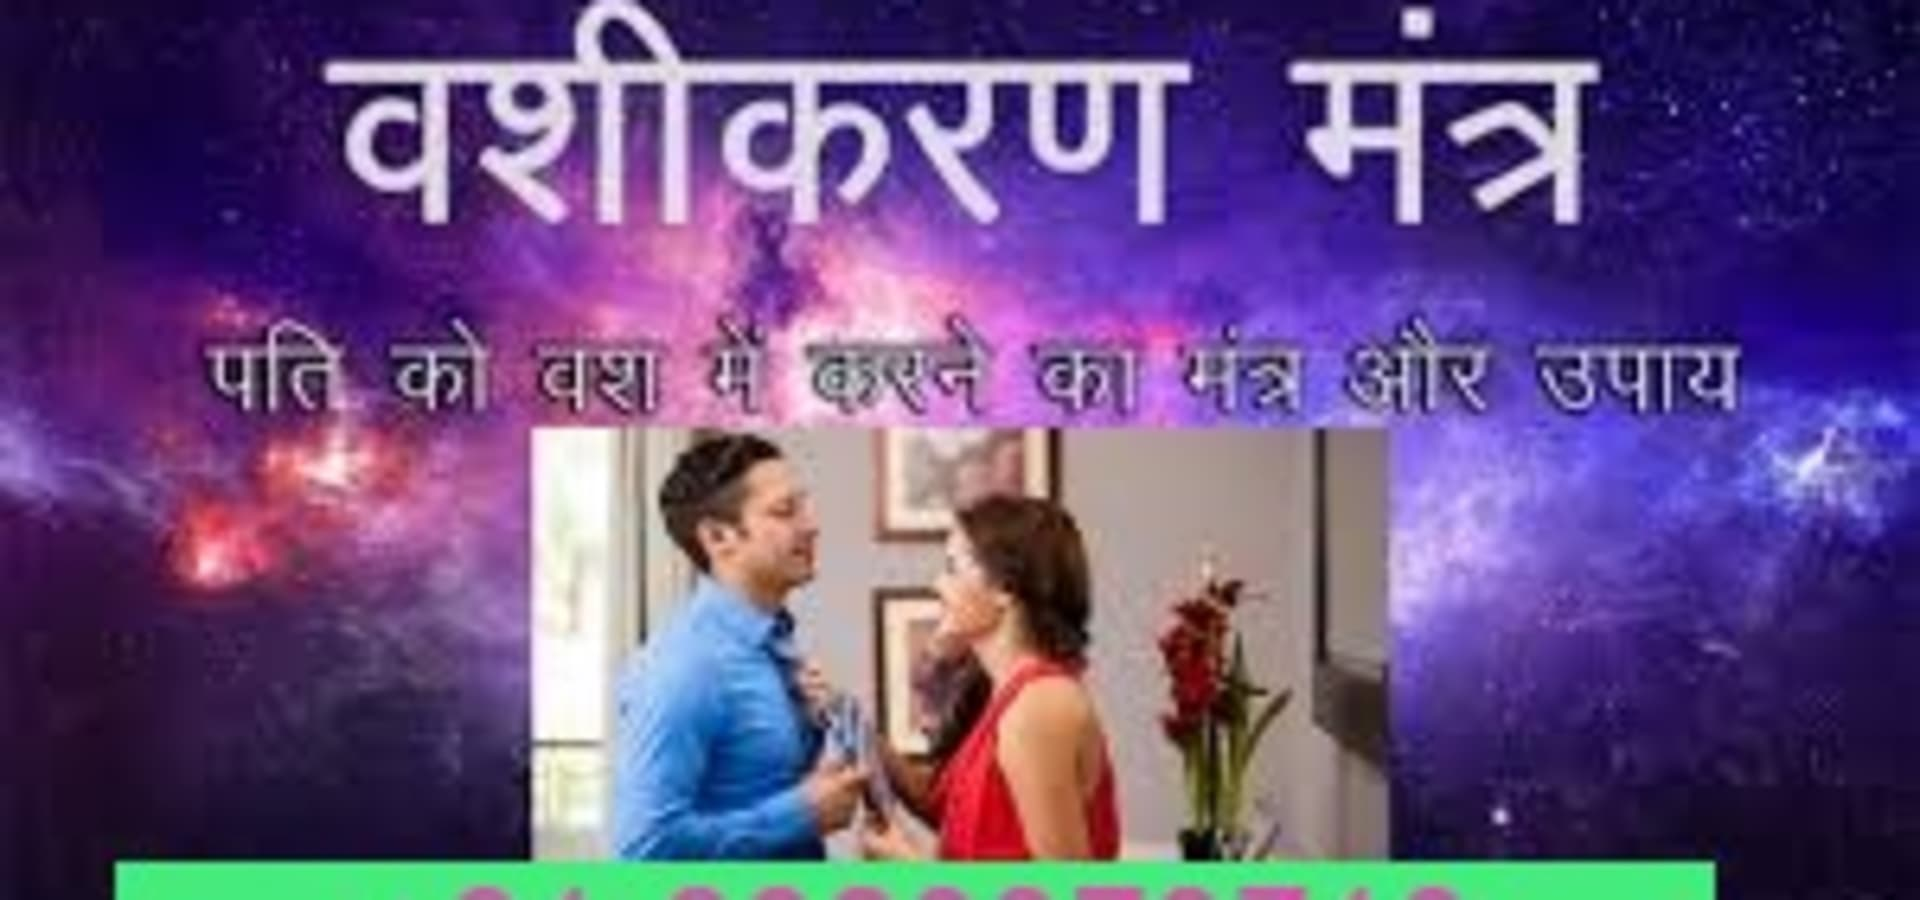 LOVE PROBLEM SOLUTION BABA JI{+91} 9928979713 iN uk